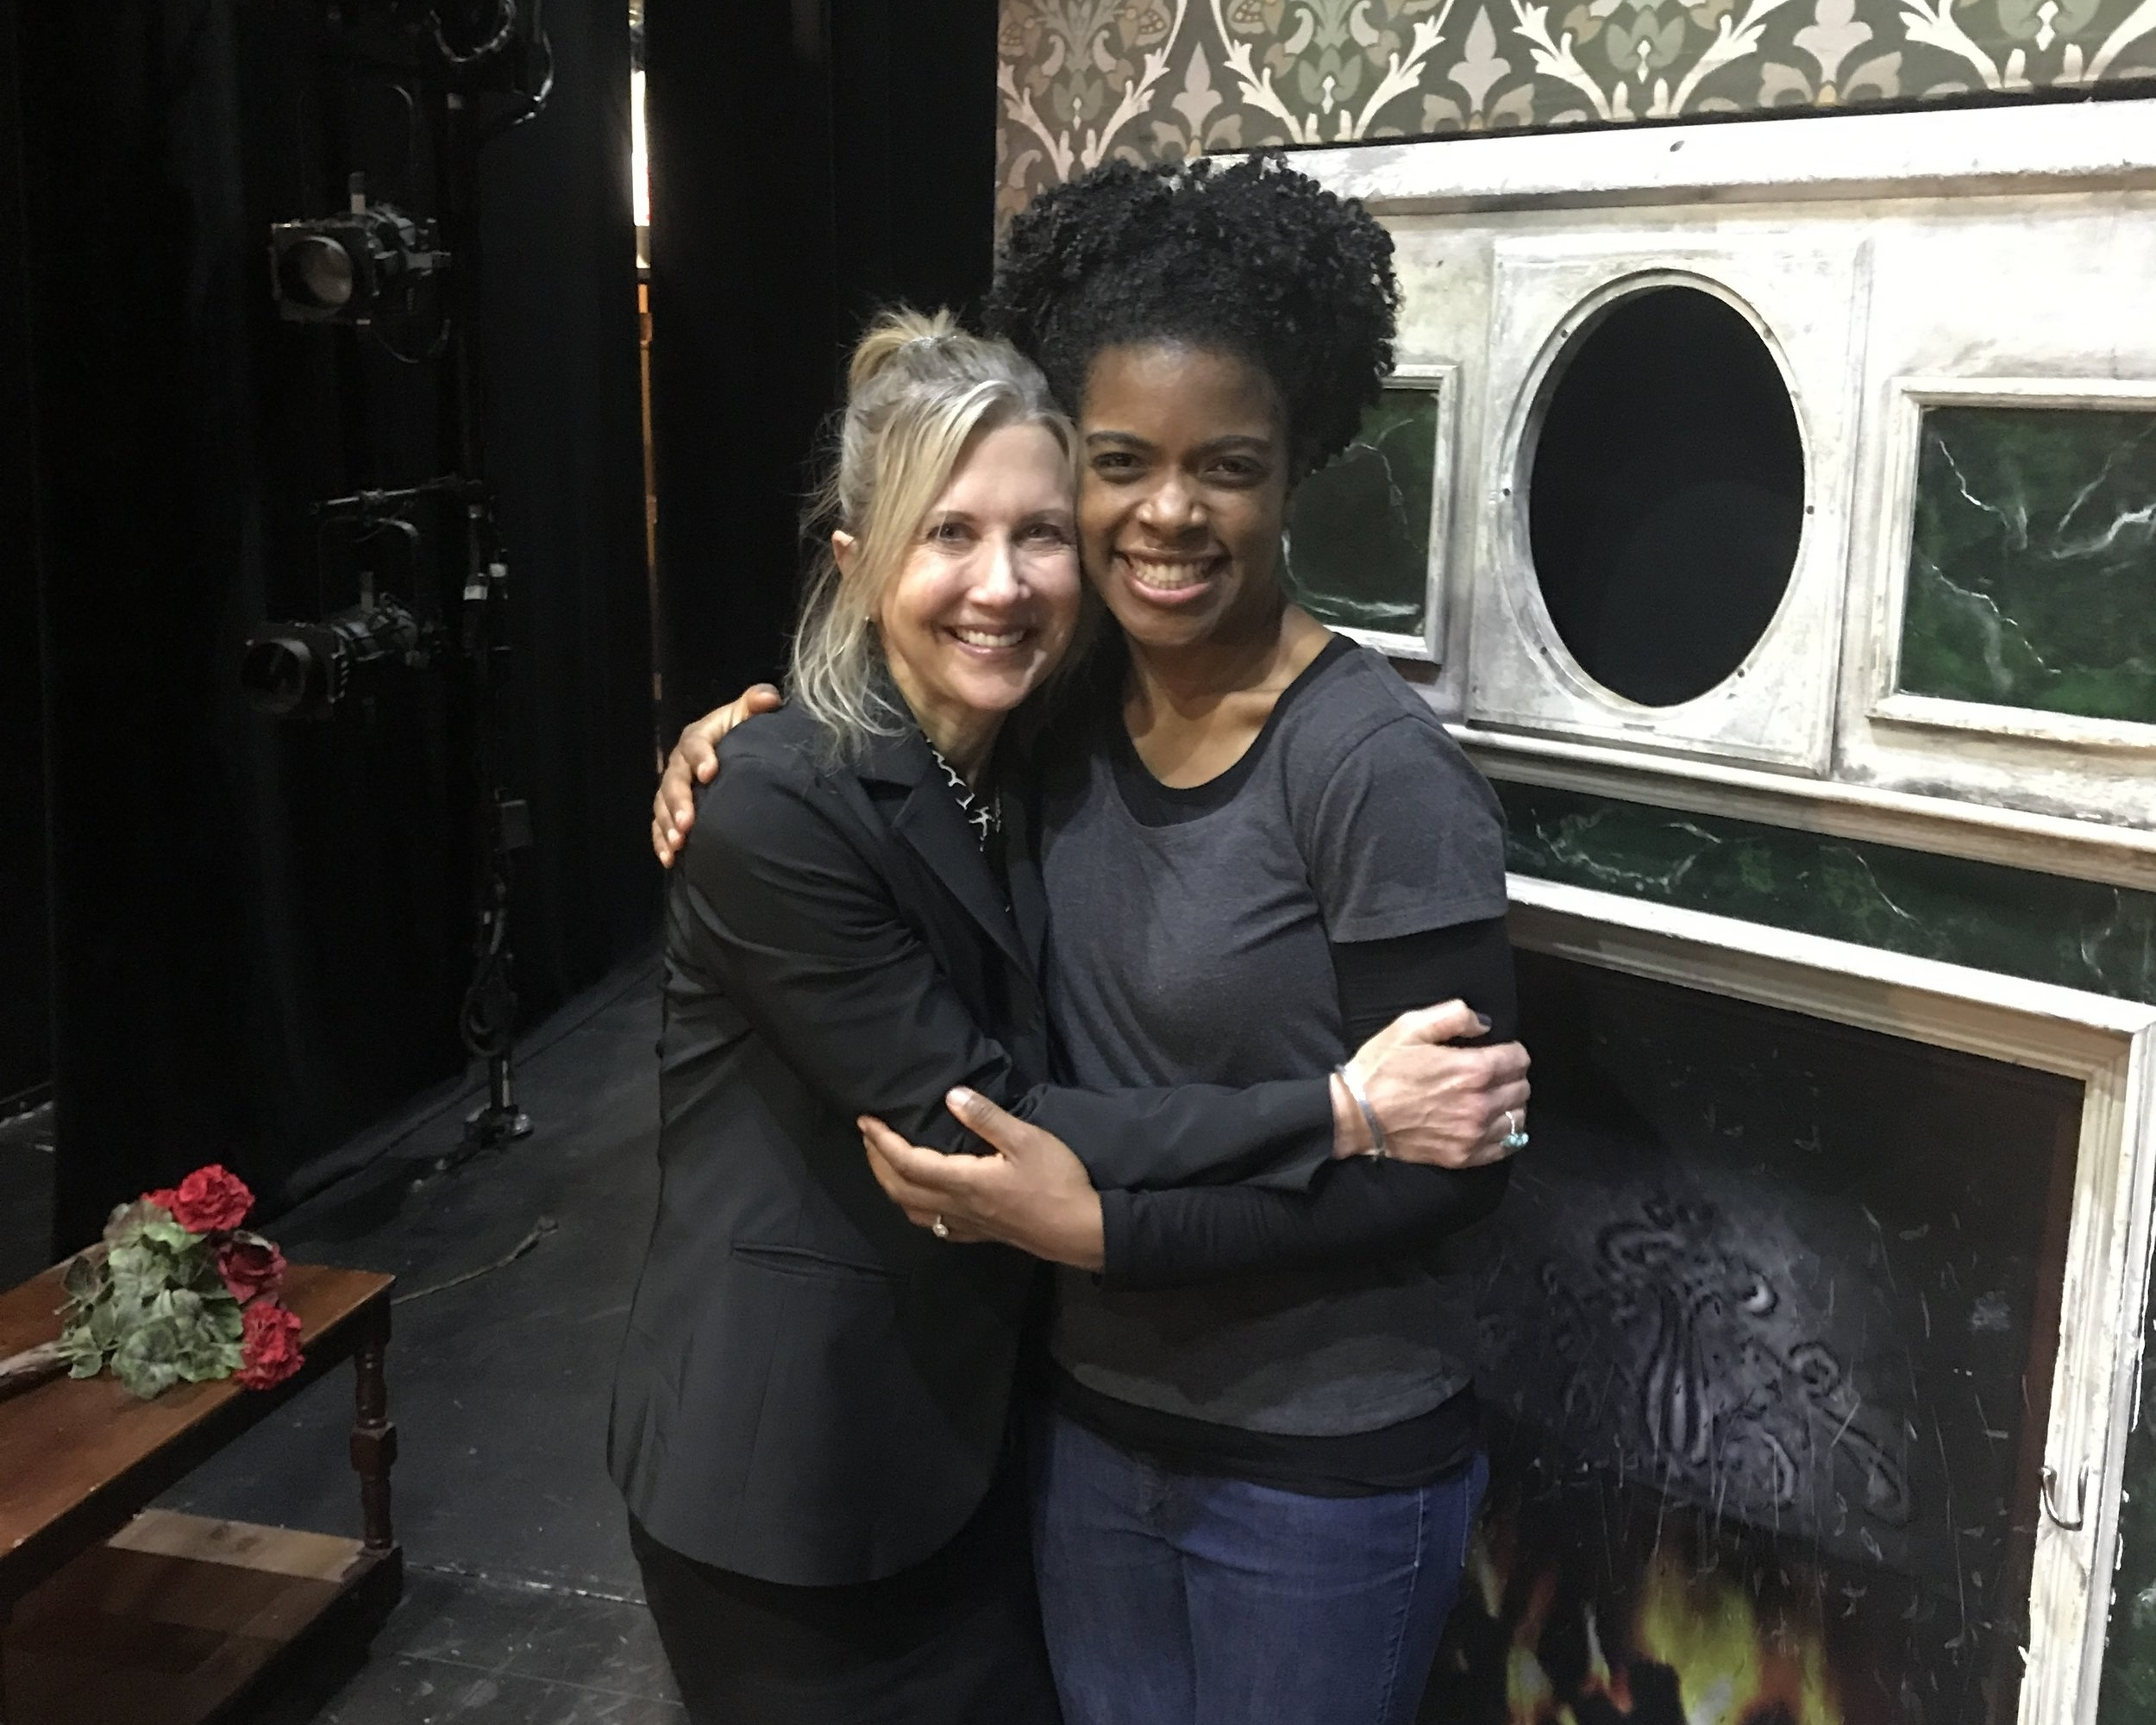 Pamela with former student Ashley Bryant backstage at   The Play that Goes Wrong   on Broadway